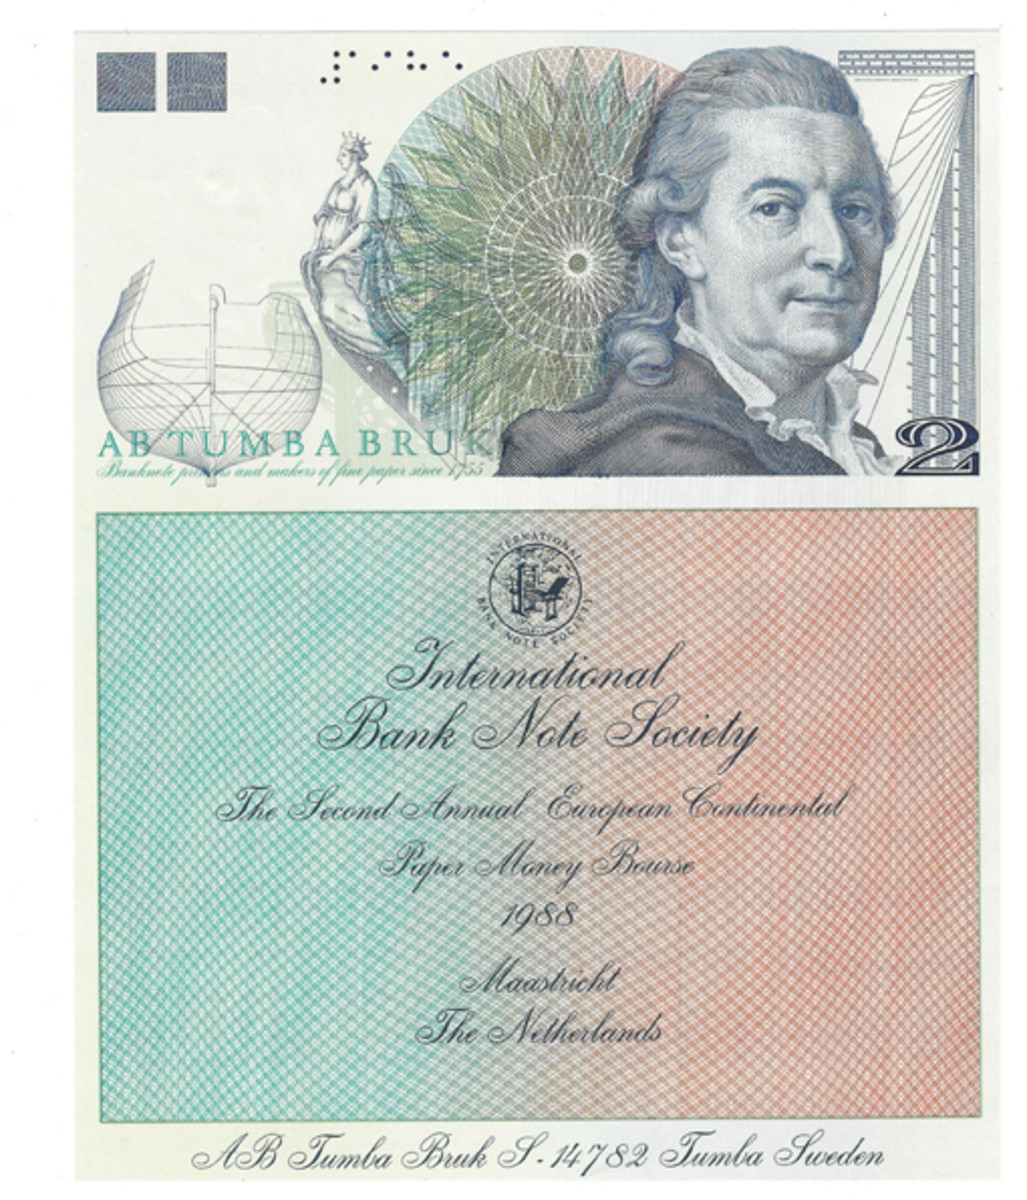 This example of a printers' sample of an information sheet for use by the International Bank Note Society was produced in 1988. Not only is the piece exciting for what it is but for the company that produced it, Tumba Bruk. The Swedish firm, established in 1775, is the oldest bank note printing factory in existence.